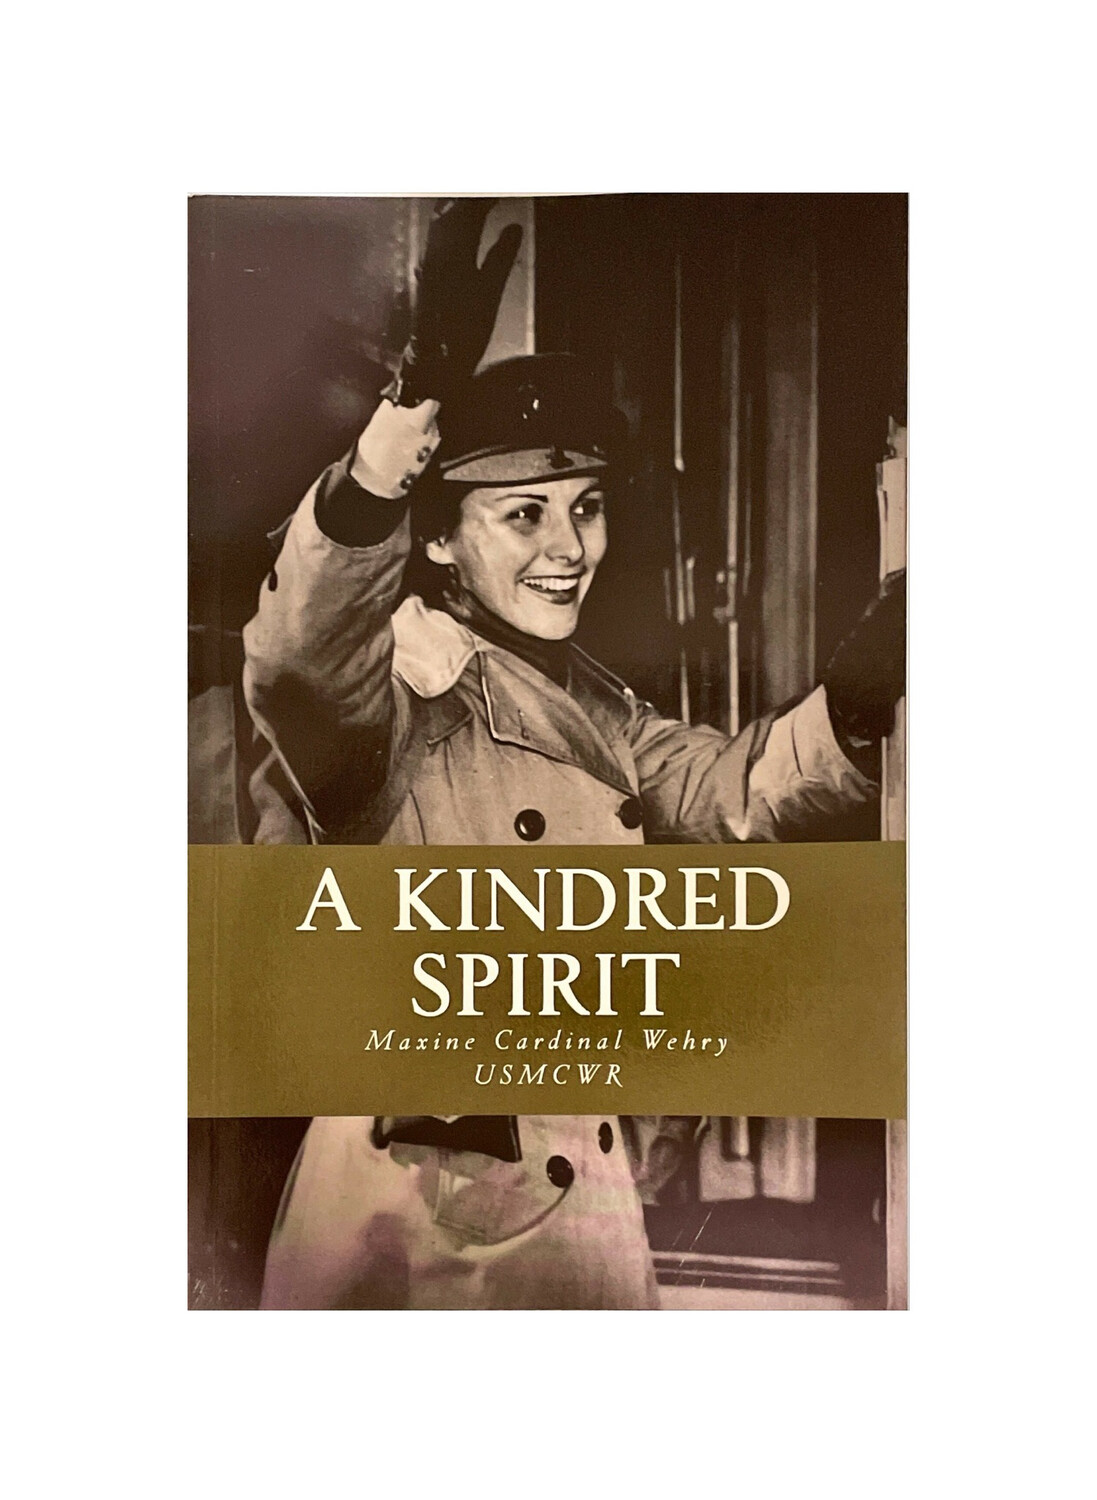 A Kindred Spirit By Maxine Cardinal Wehry